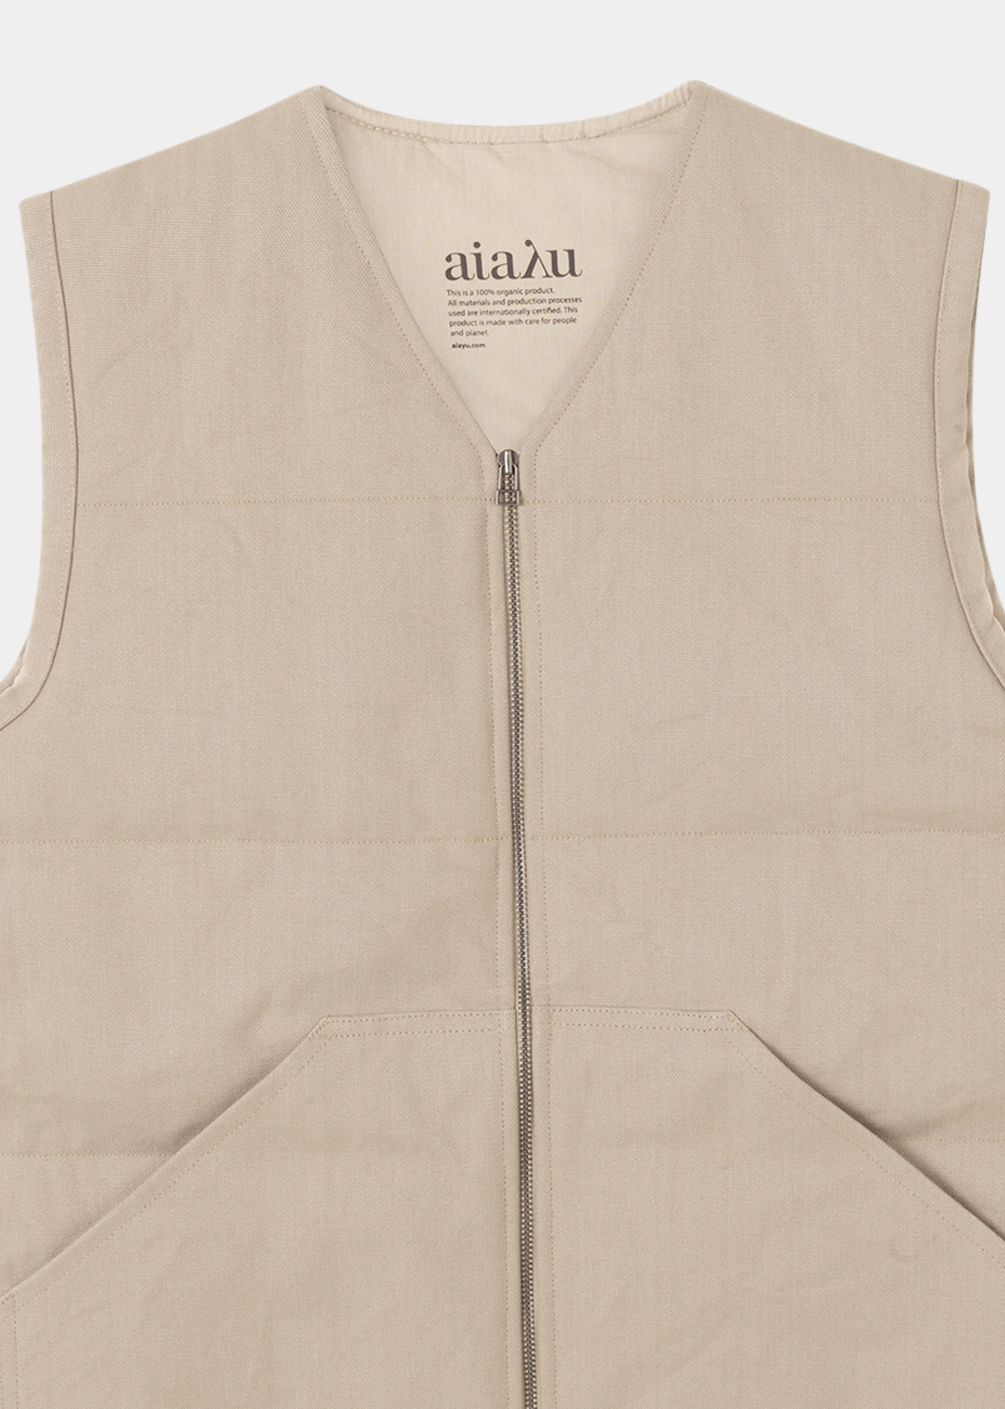 Outerwear - Camp Gilet Vest